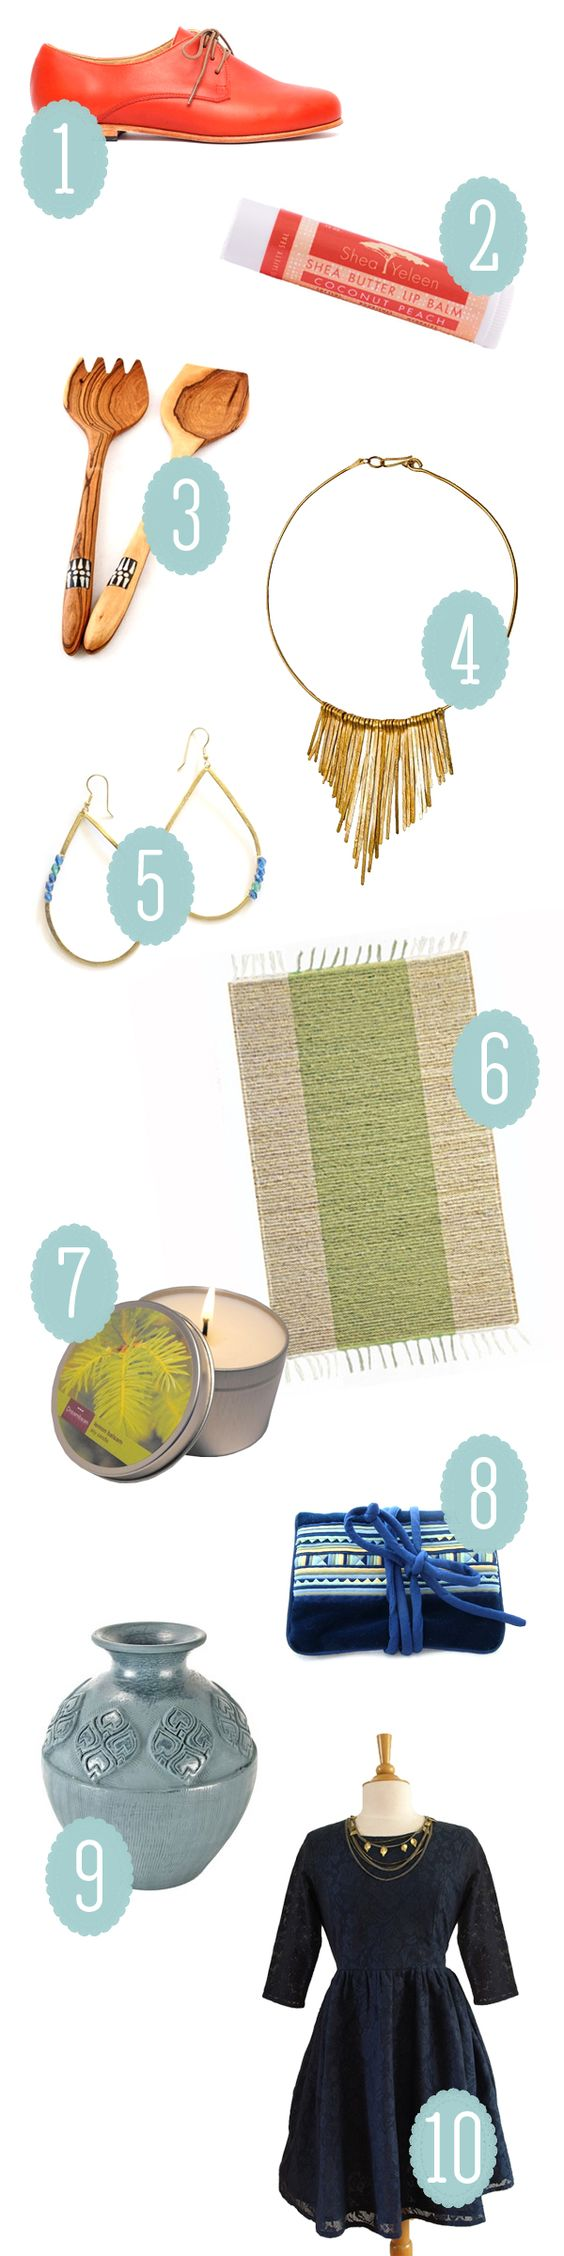 FairTradeTuesday Gift Guide